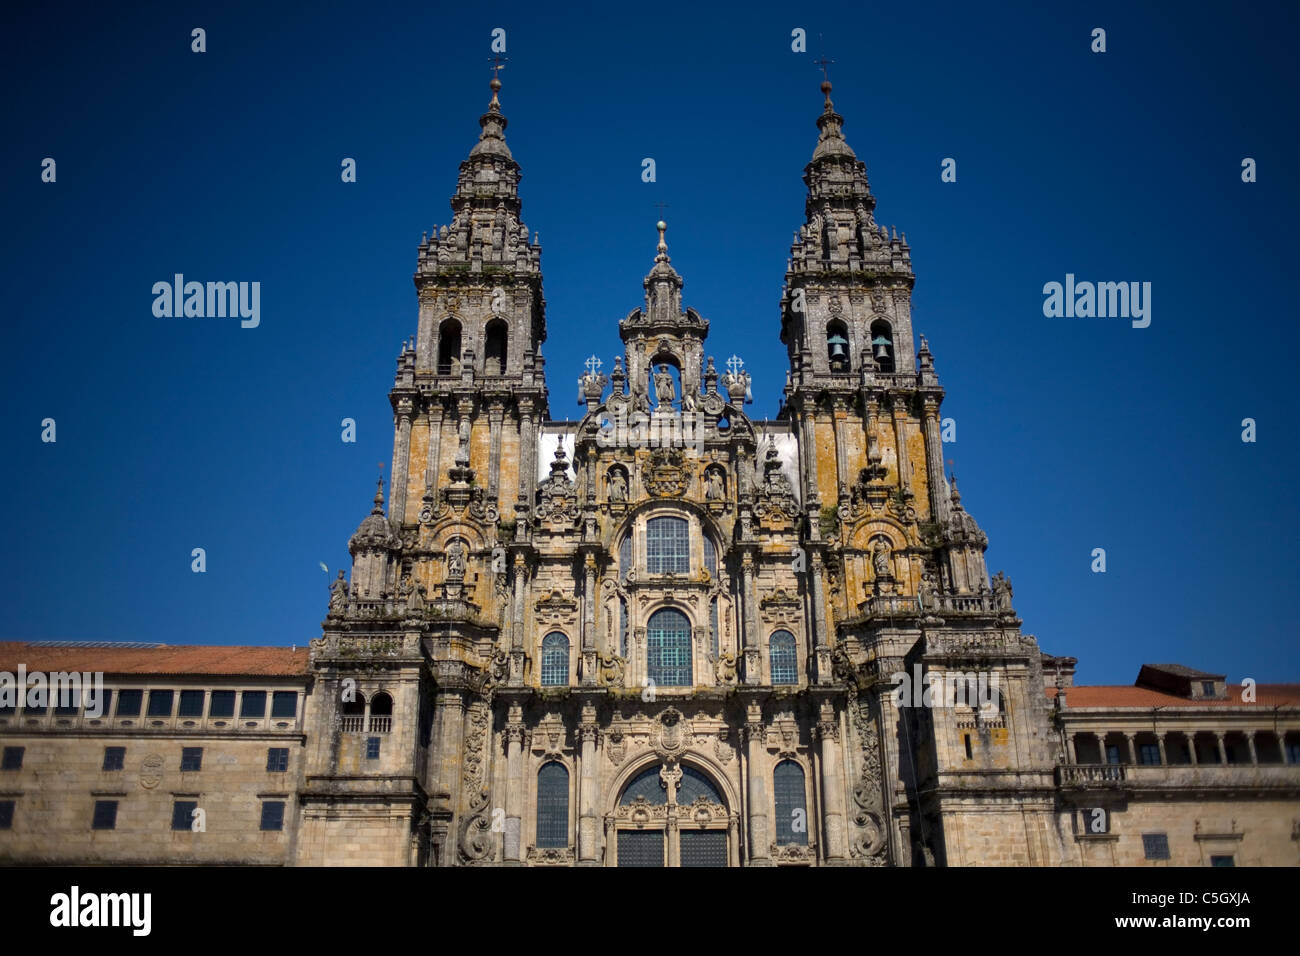 The Cathedral of Santiago de Compostela, Spain. Stock Photo